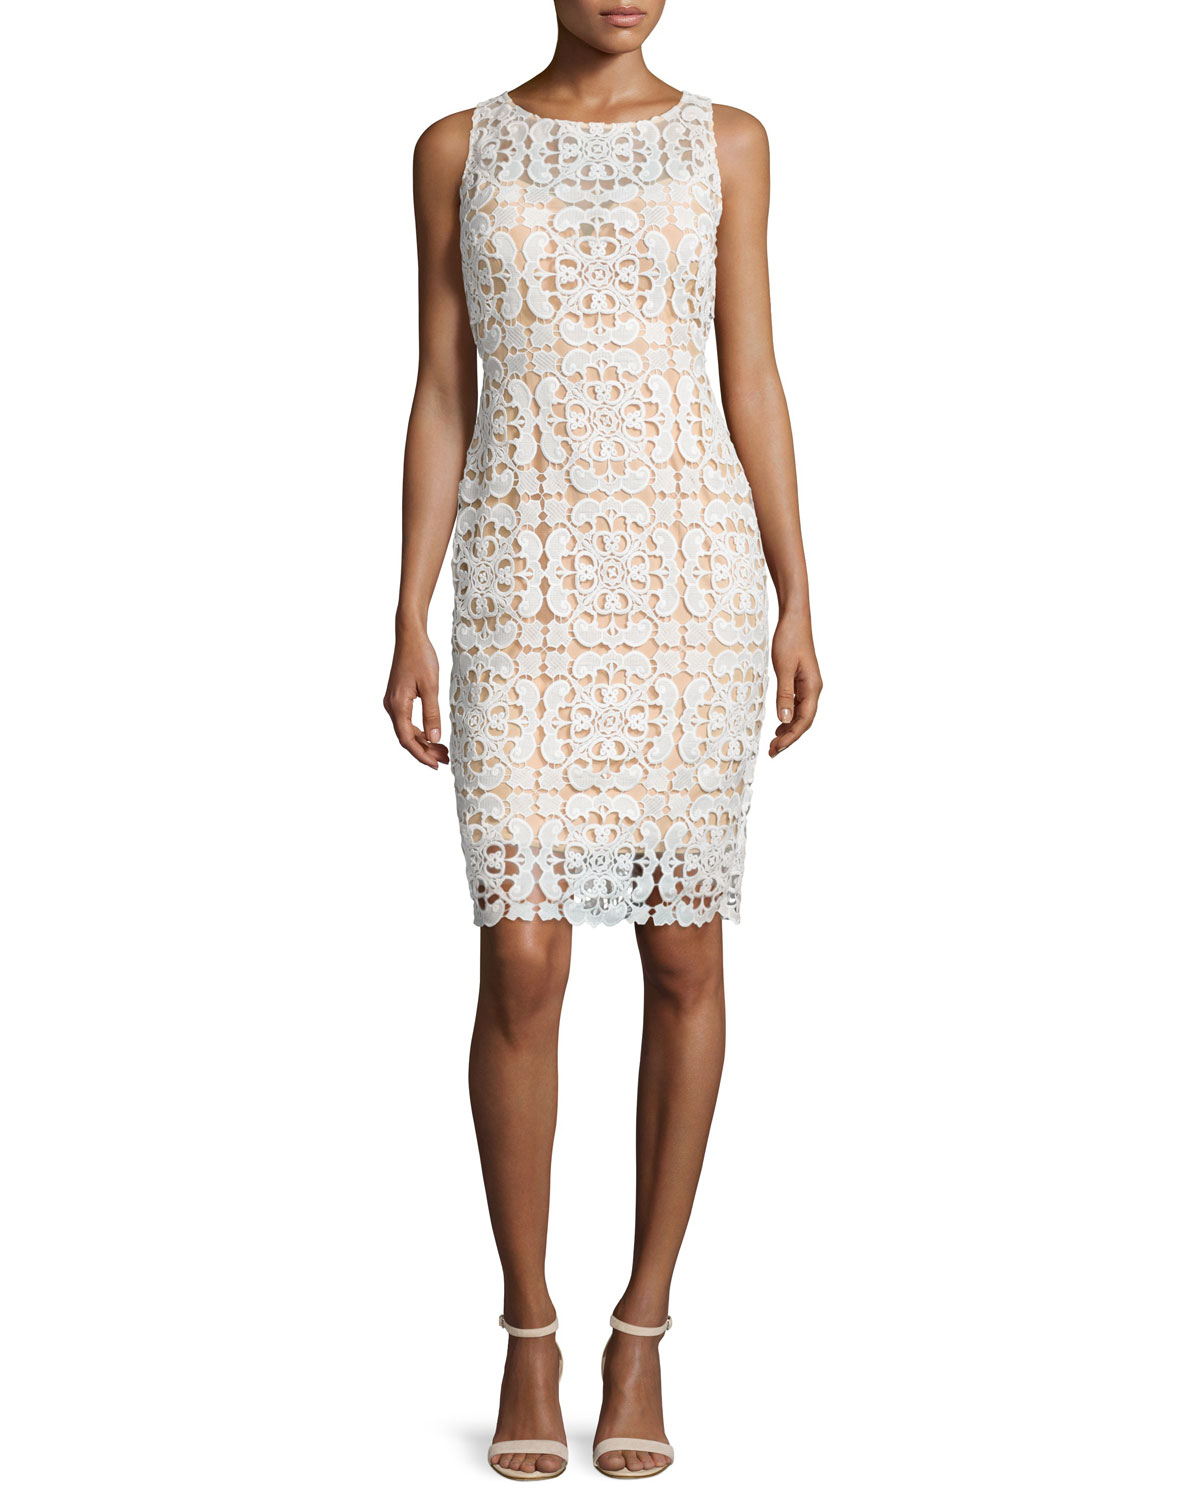 Sleeveless Macrame Sheath Dress, Ivory/Nude